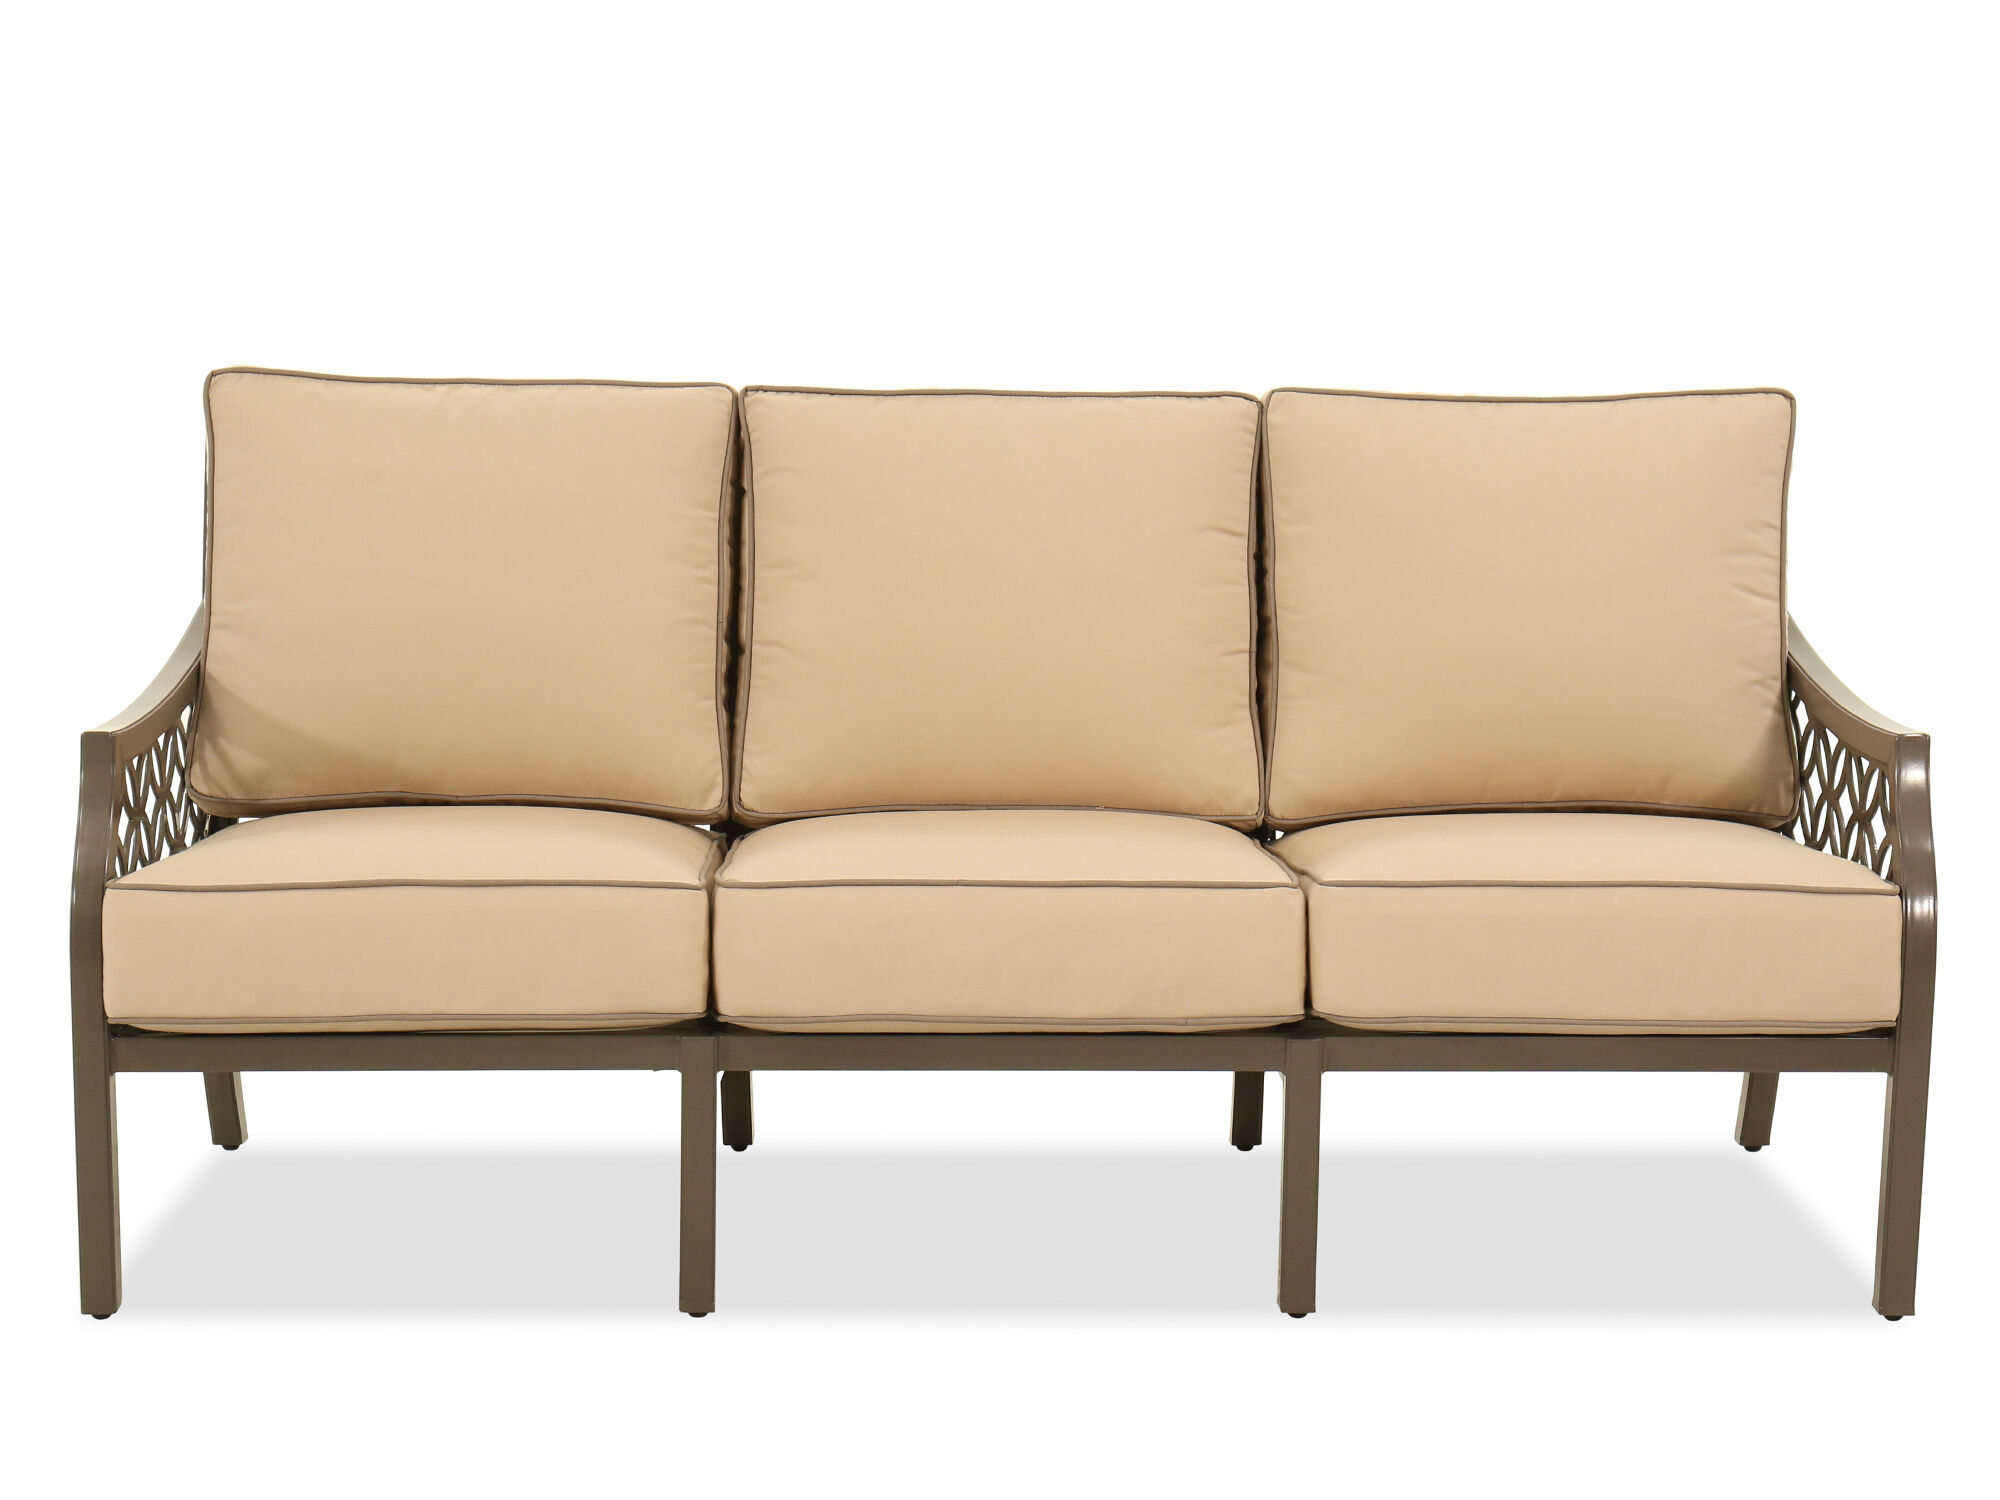 Contemporary All Weather Resistant Patio Sofa In Brown ...